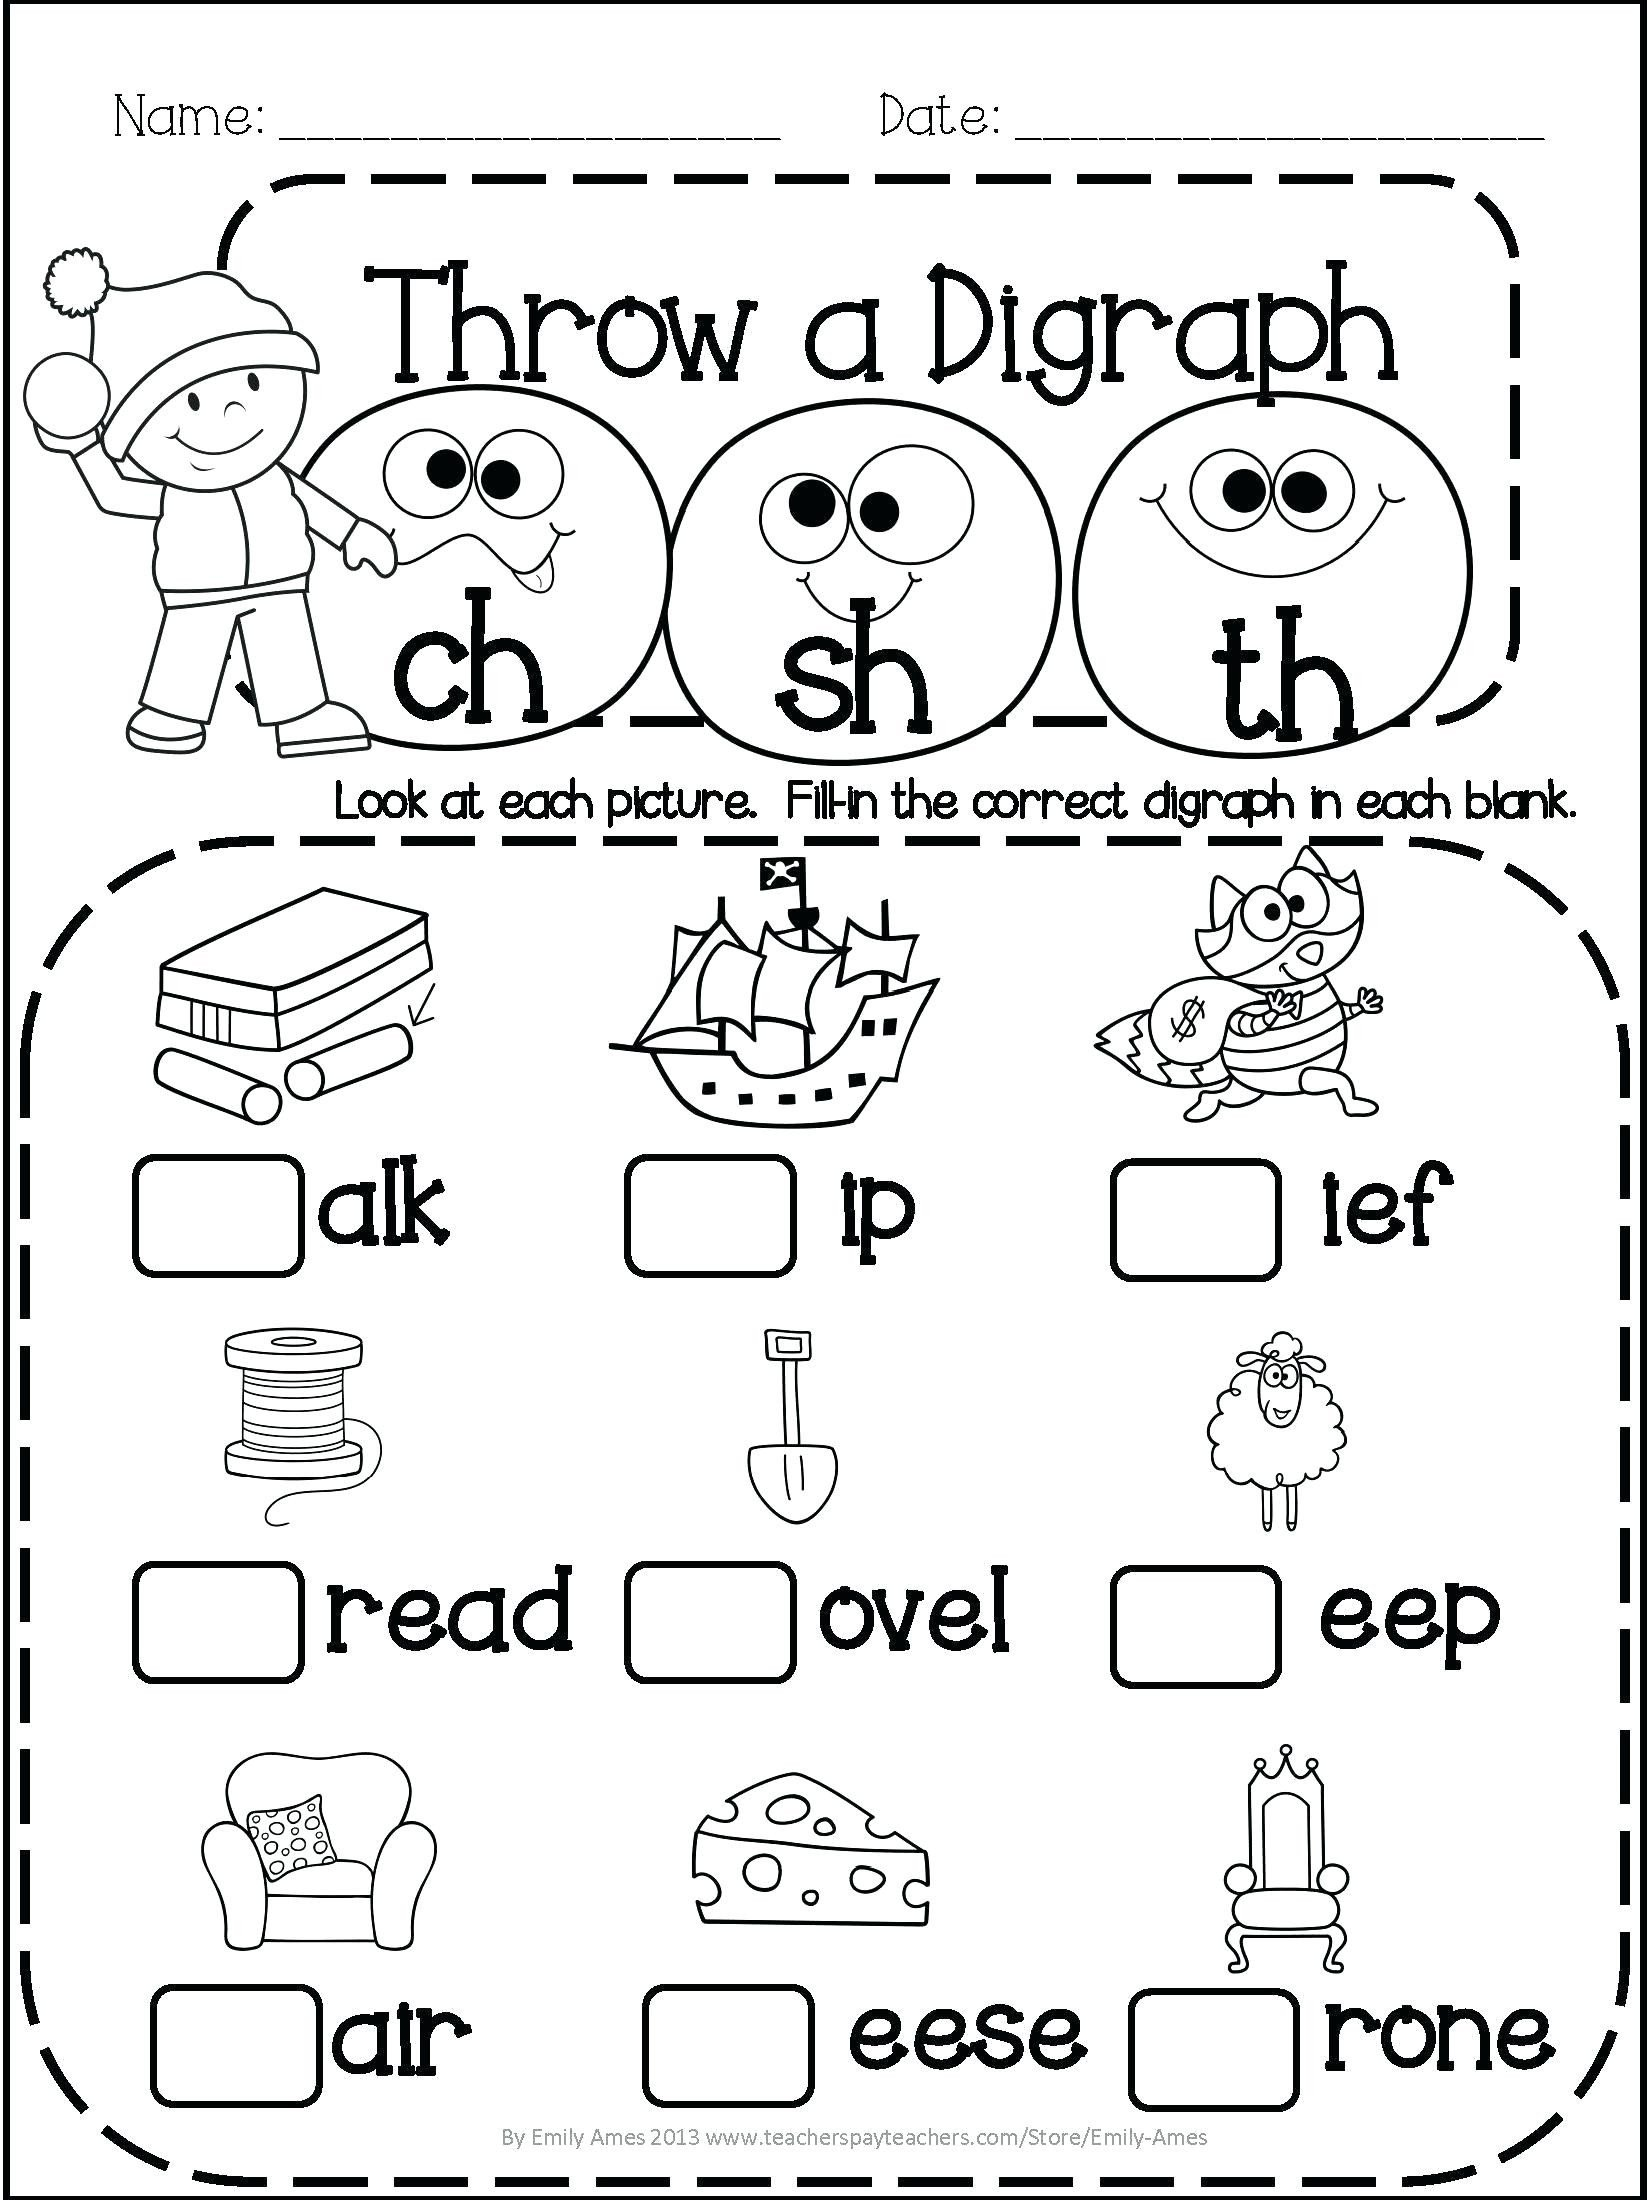 Printable First Grade Reading Worksheets 1989 Generationinitiative Page 5 Free Printable Math